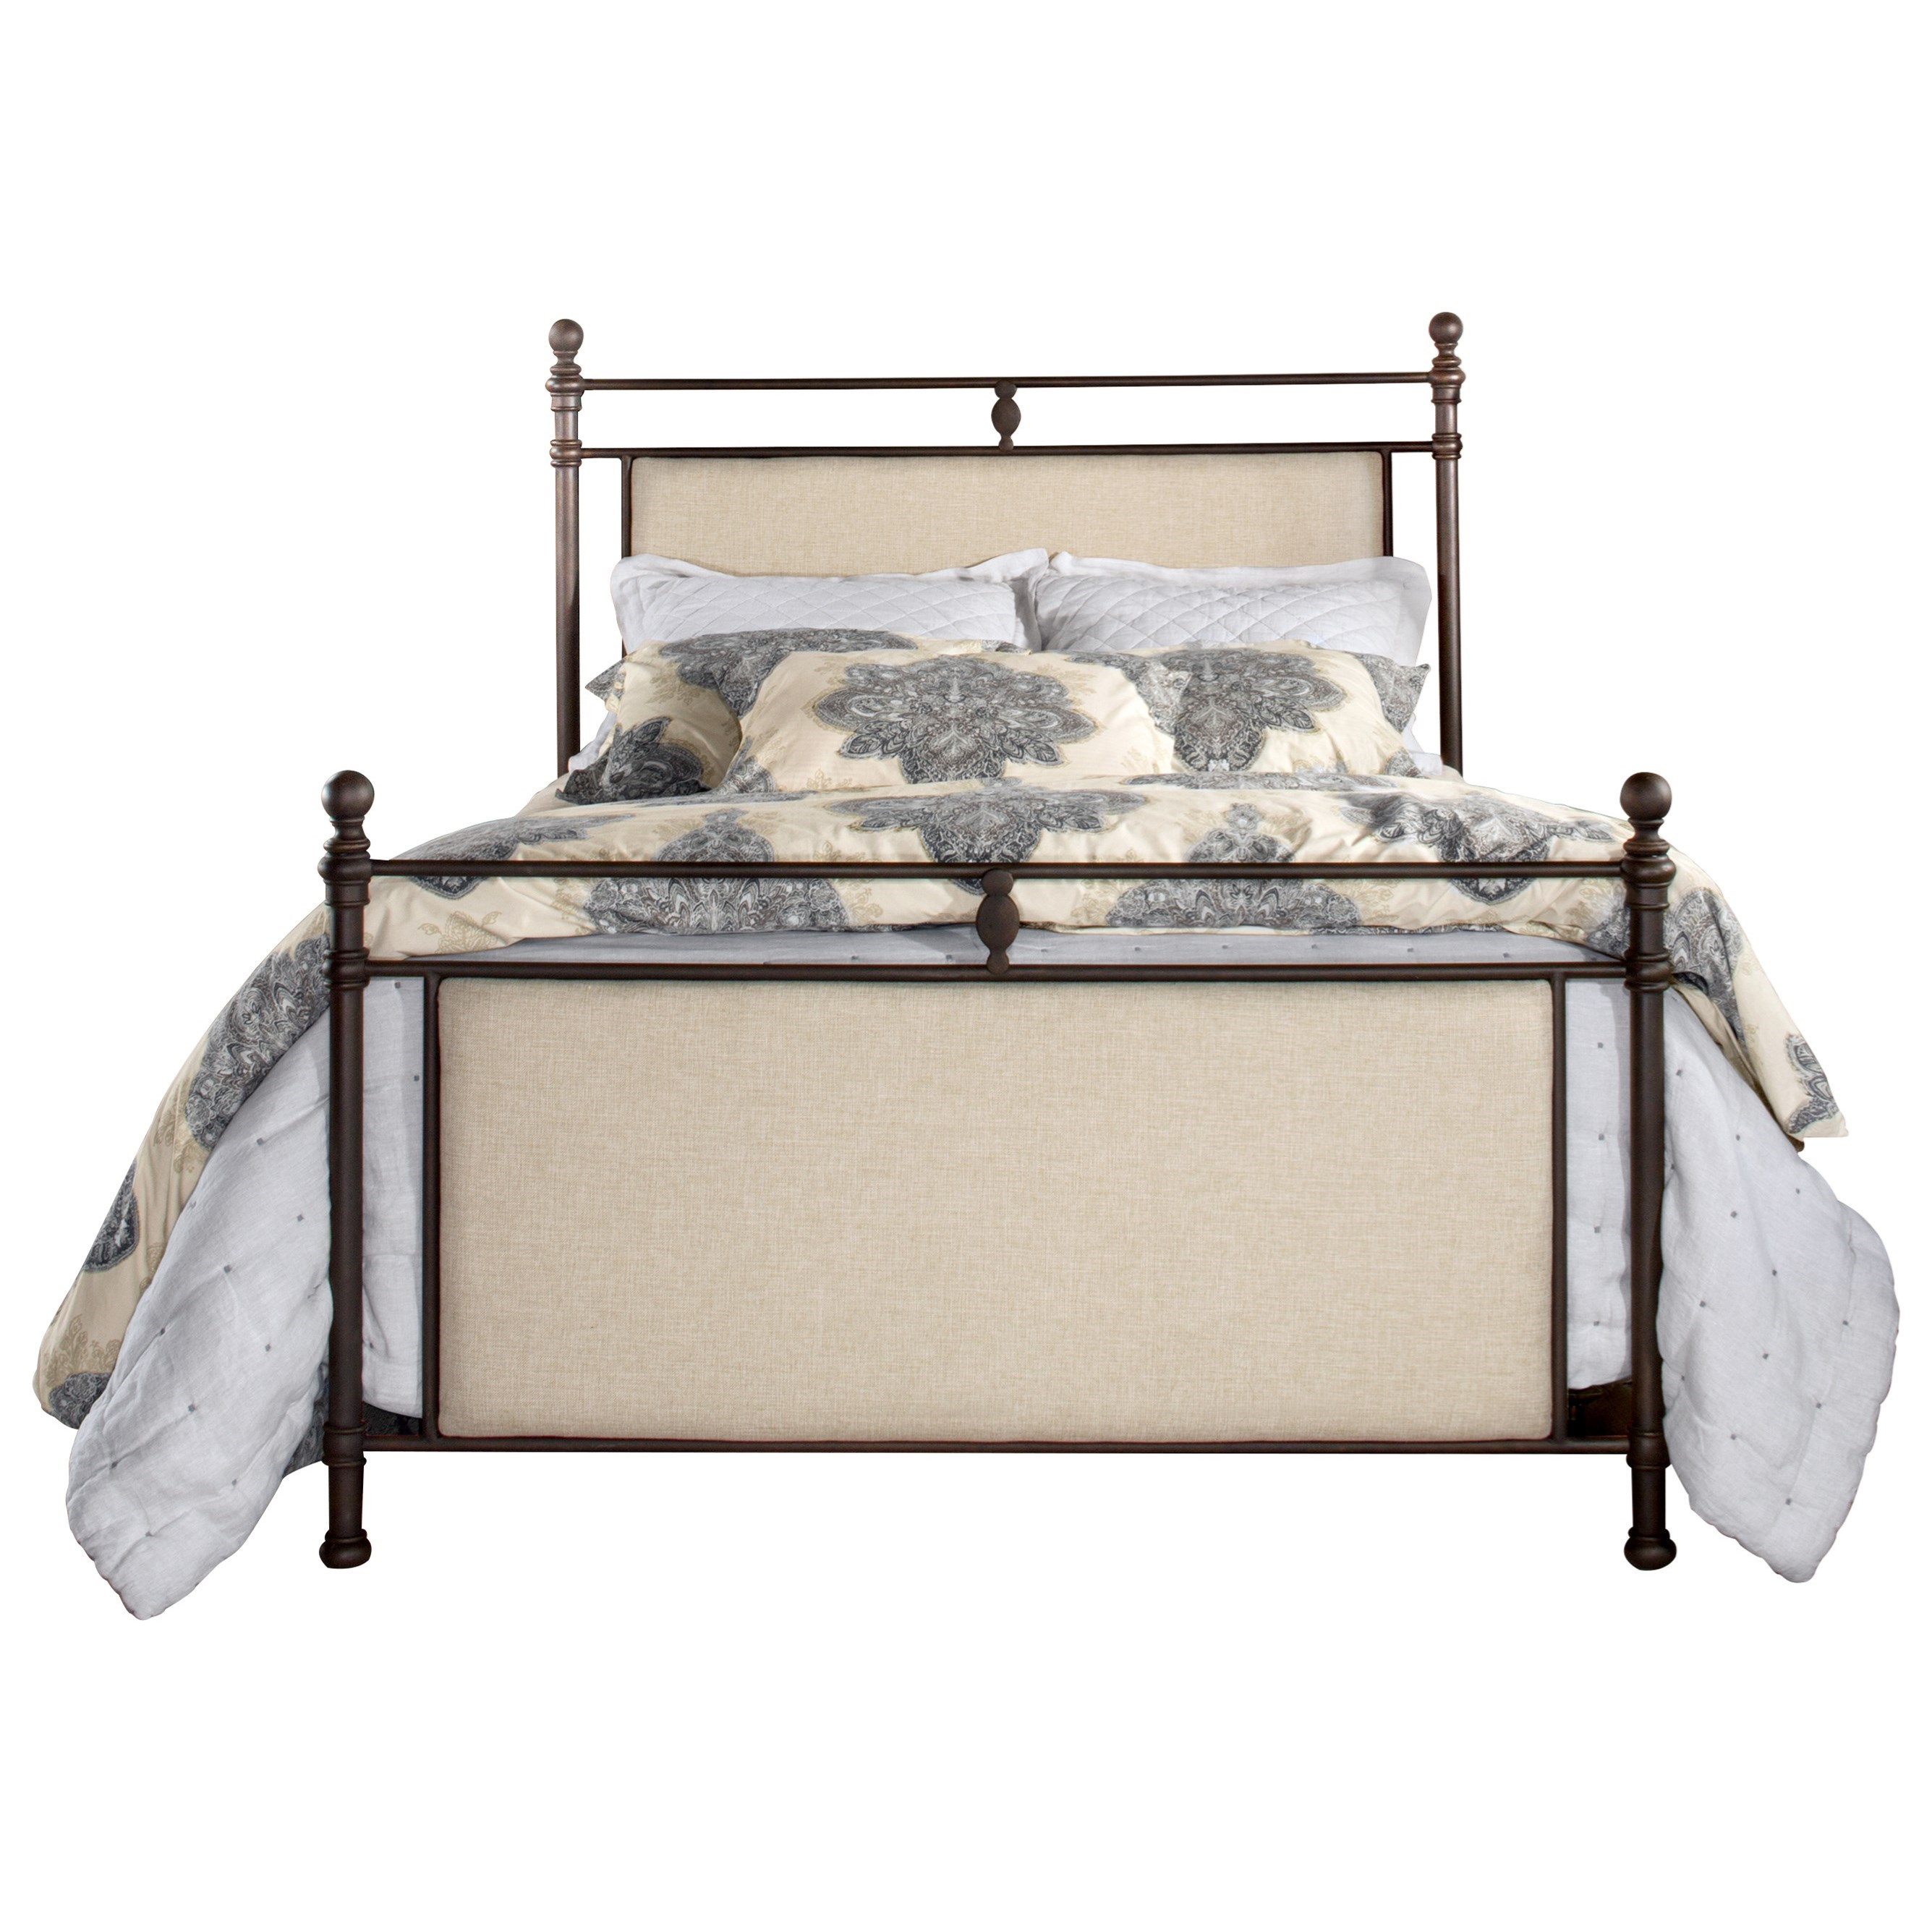 Ashley King Upholstered Bed by Hillsdale at Carolina Direct